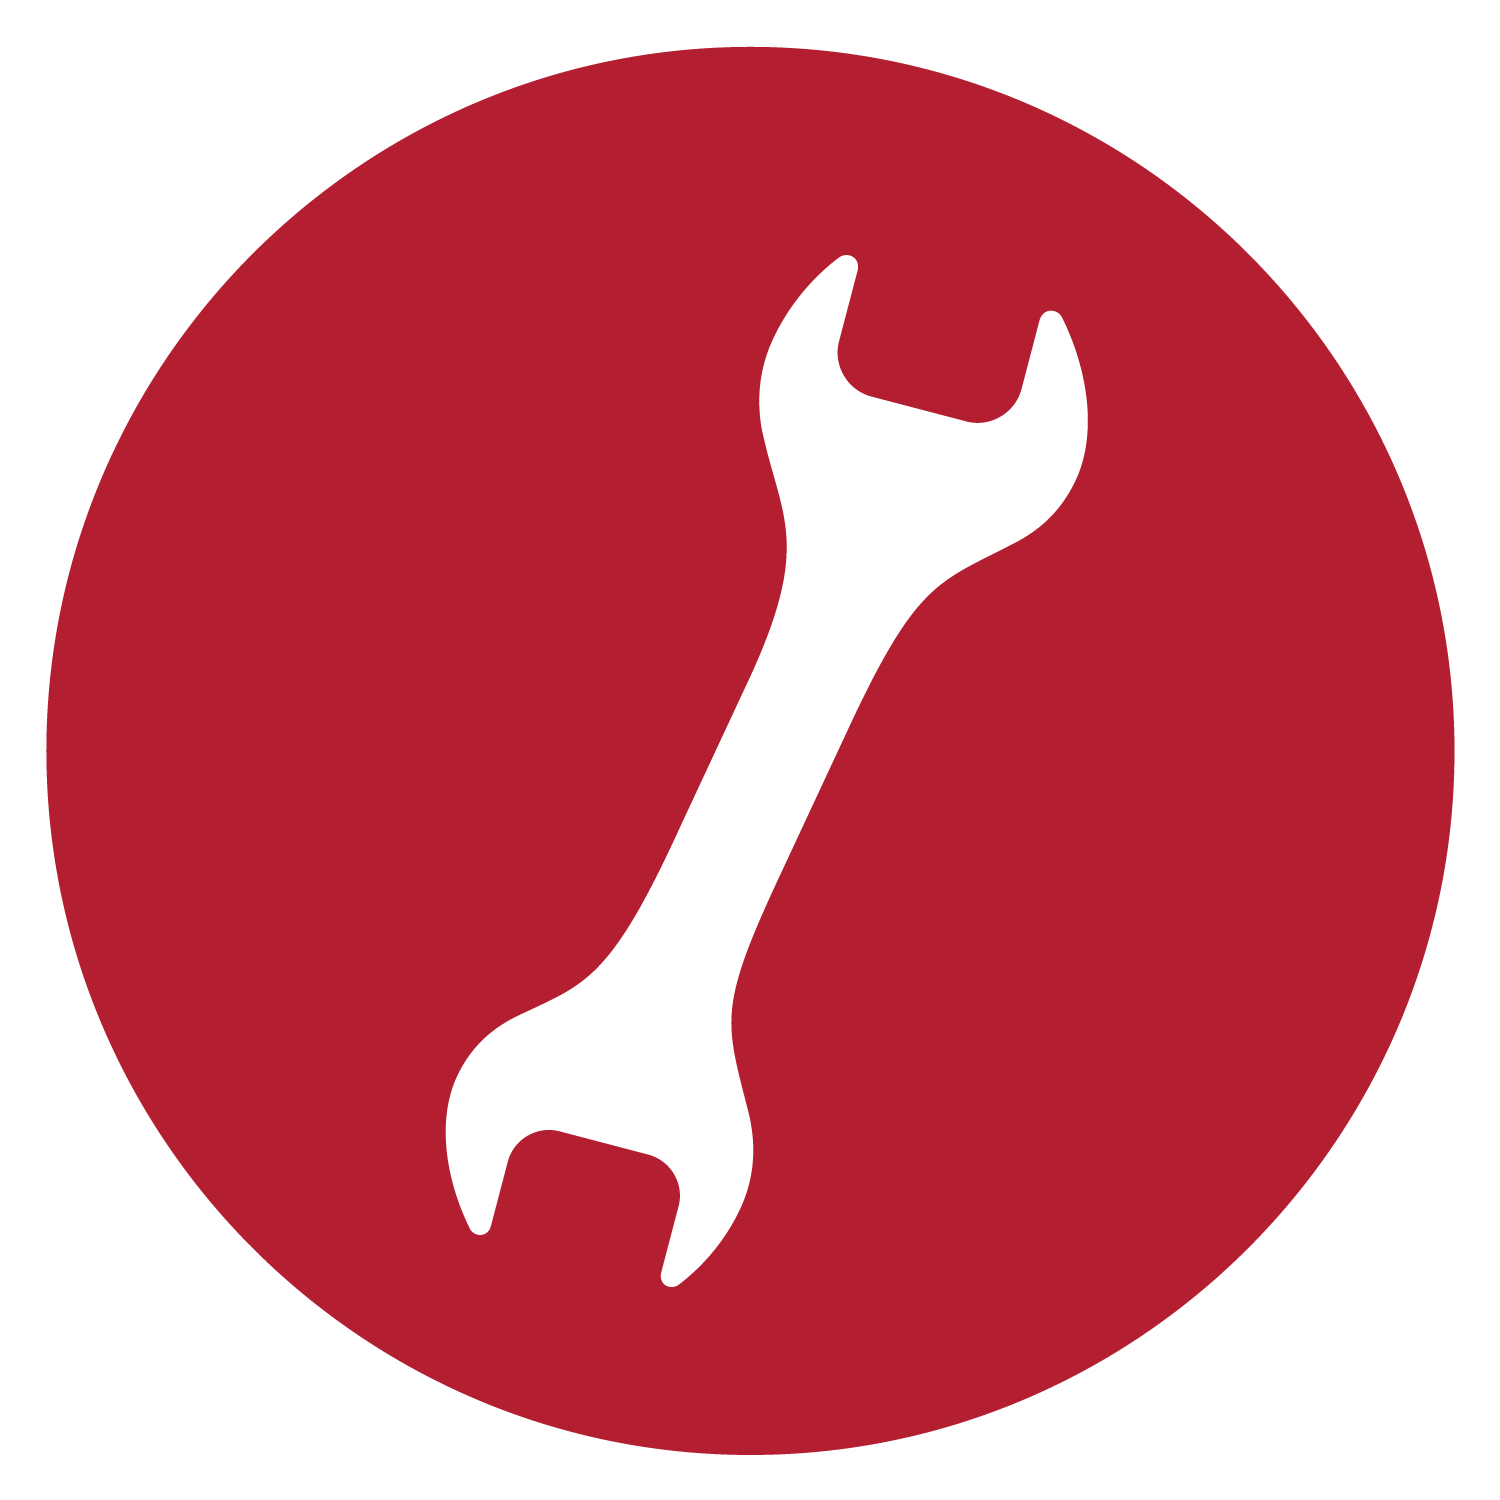 Download Wrench Icon image #25544